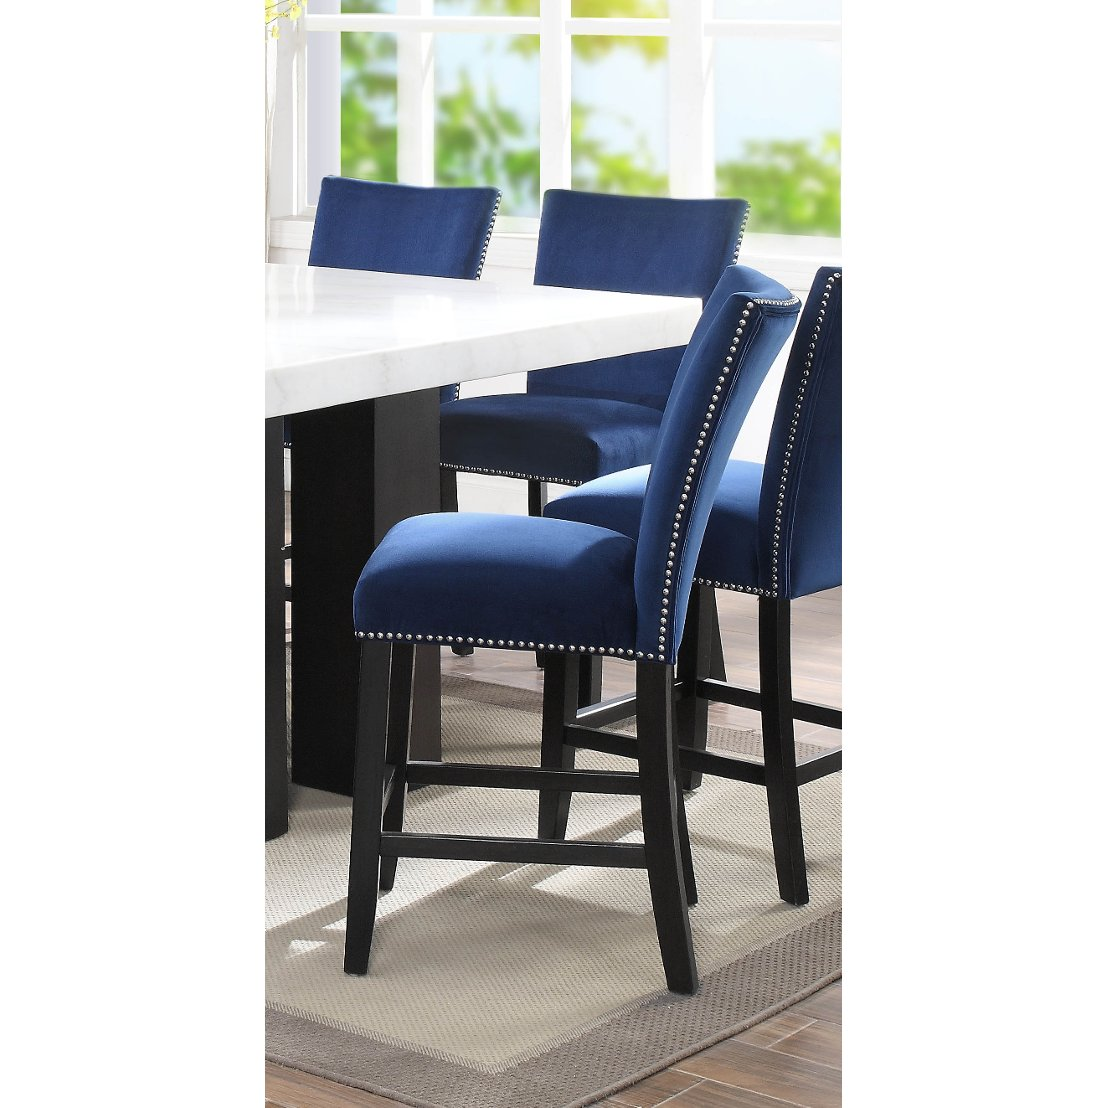 b86ca642c6e1c9 Search Results For 'upholstered rockers' | Bar Stools | RC Willey